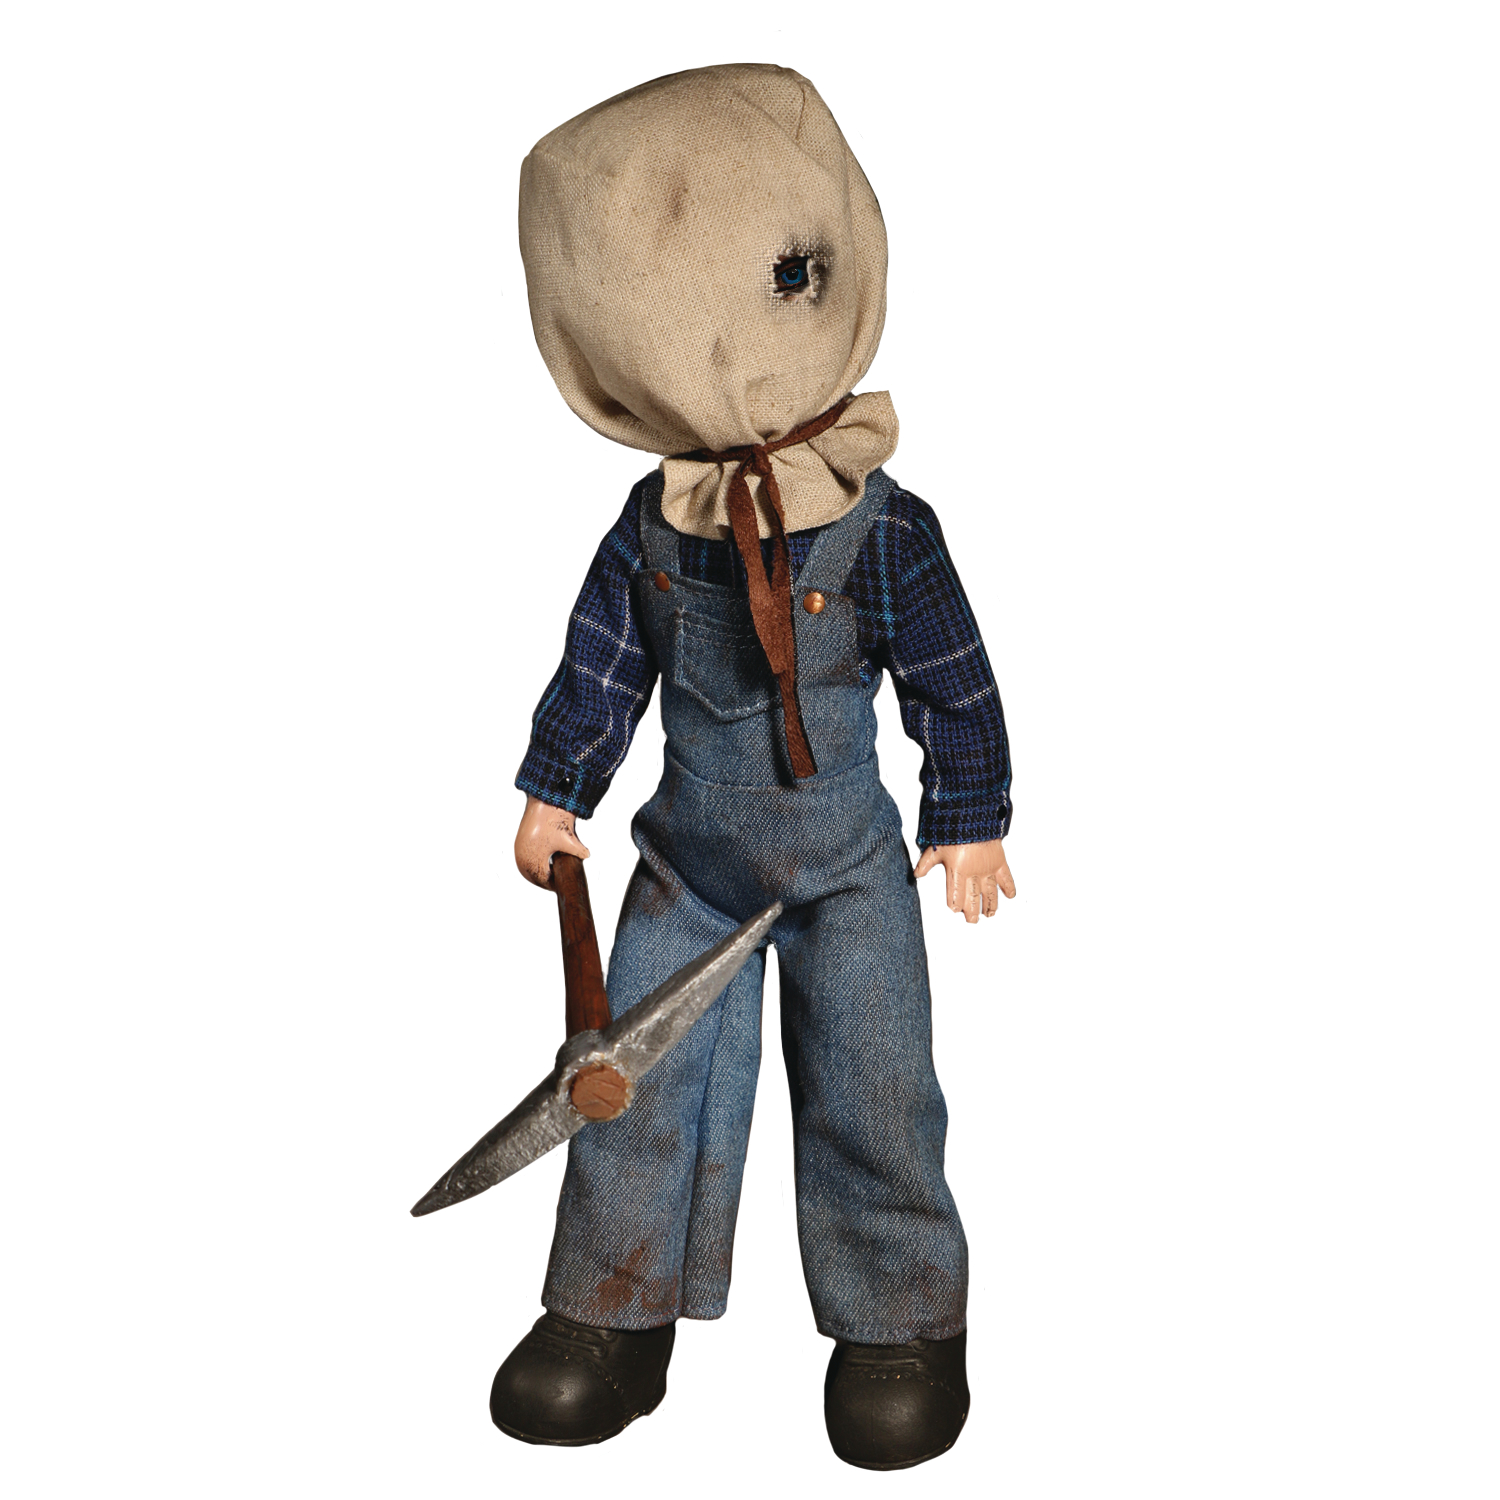 LDD FRIDAY THE 13TH PART II JASON VOORHEES DOLL